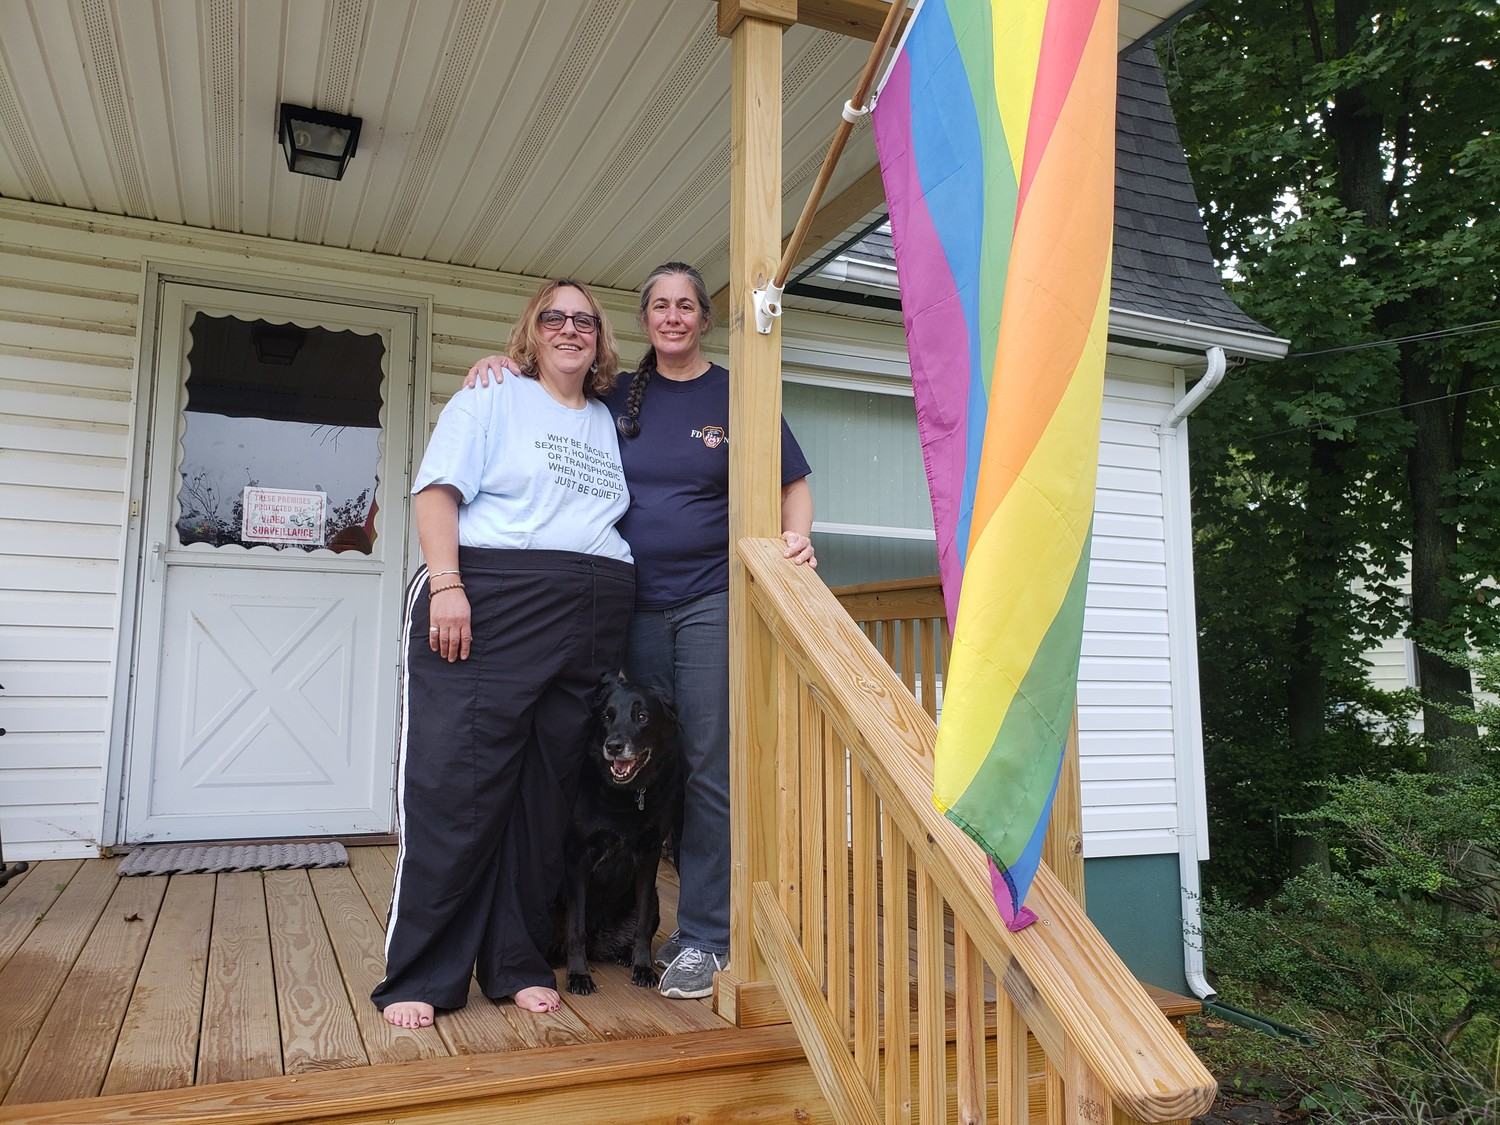 Celia Fabrizio, left, and Patricia Chiapuzzi were all smiles in front of their new rainbow flag with their dog Jet on Sept. 11, but they weren't smiling last month when their previous flag was taken down by a vandal. The two married in September 2013, shortly after a Supreme Court decision allowed same-sex couples to wed.